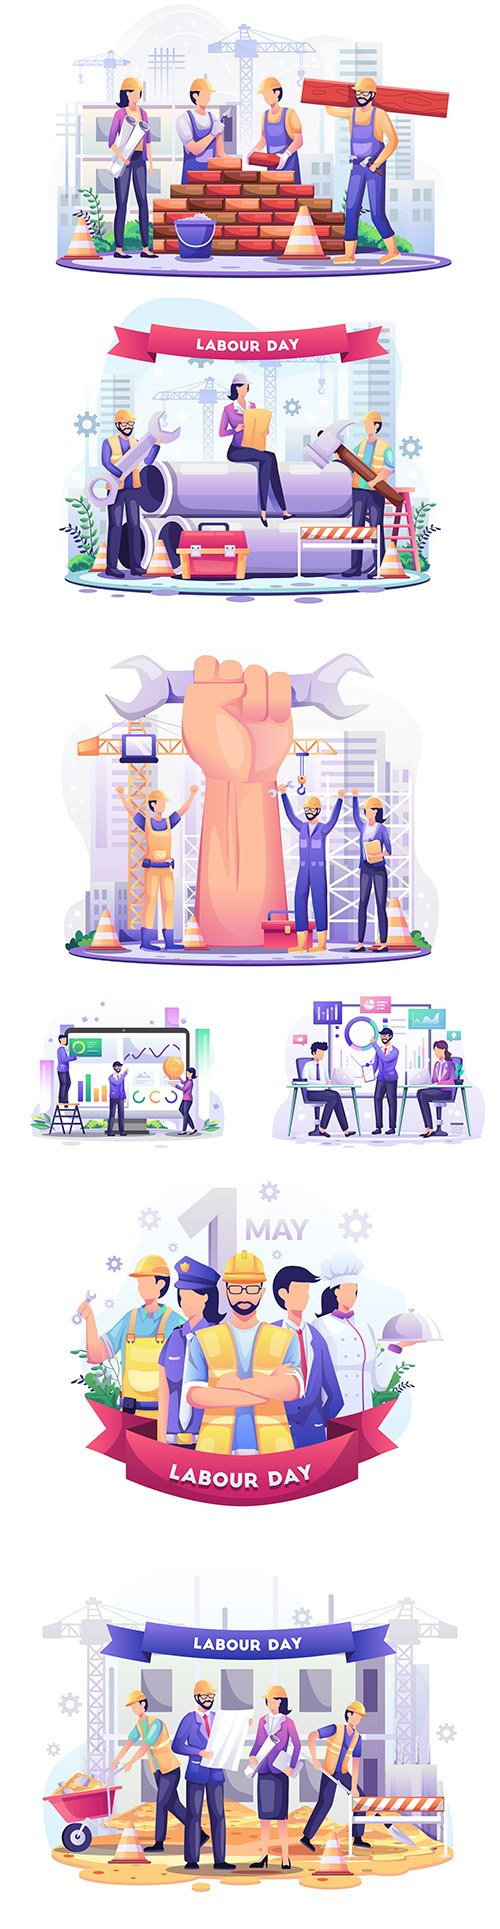 Labor Day 1 May and business analysis concept illustration